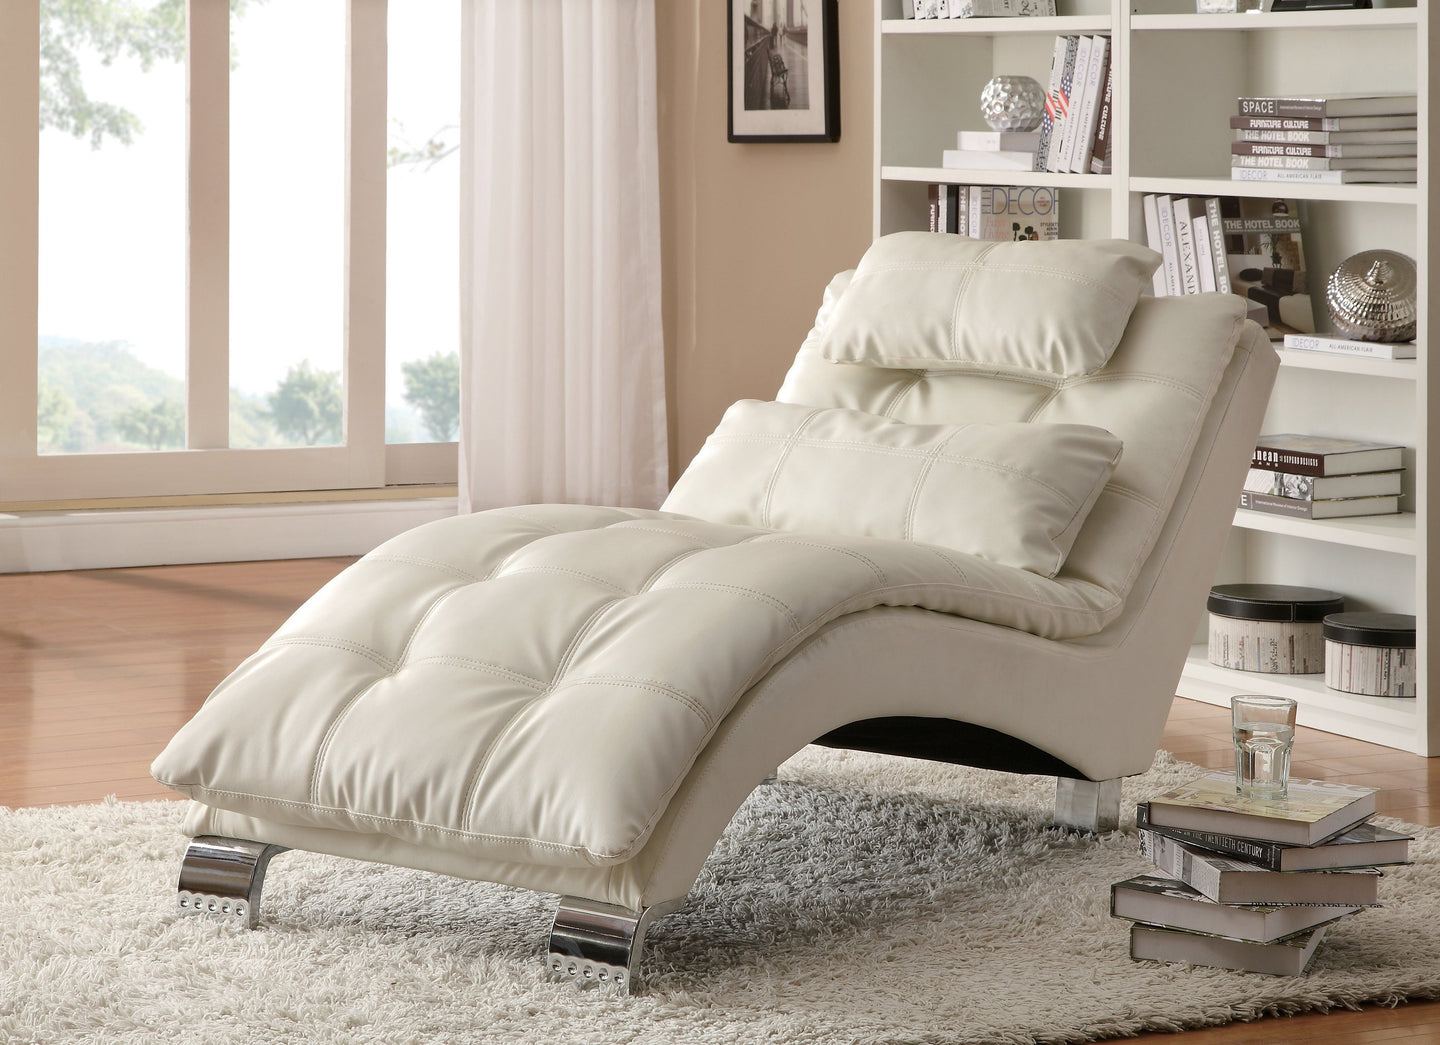 Dilleston White Upholstered Chaise Pillow Top Seat